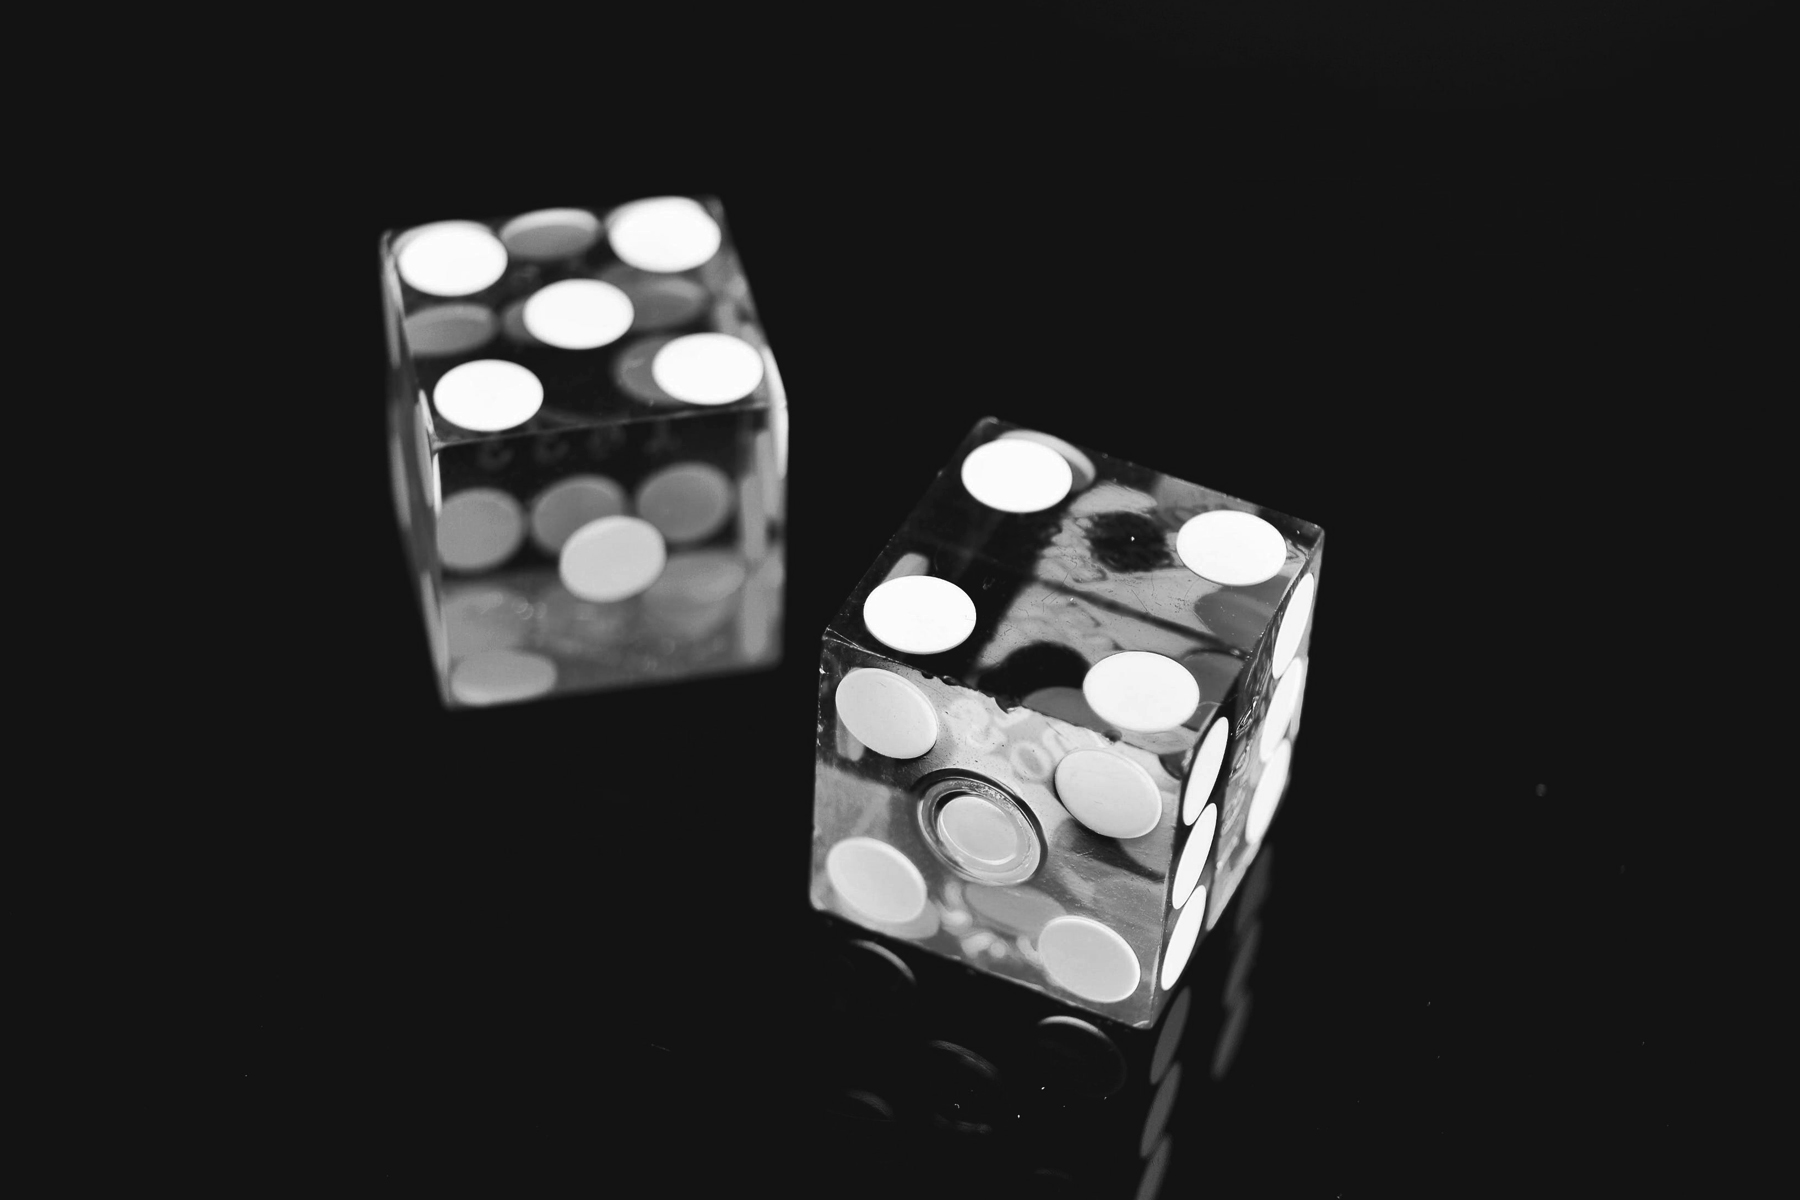 two 6 sided dice